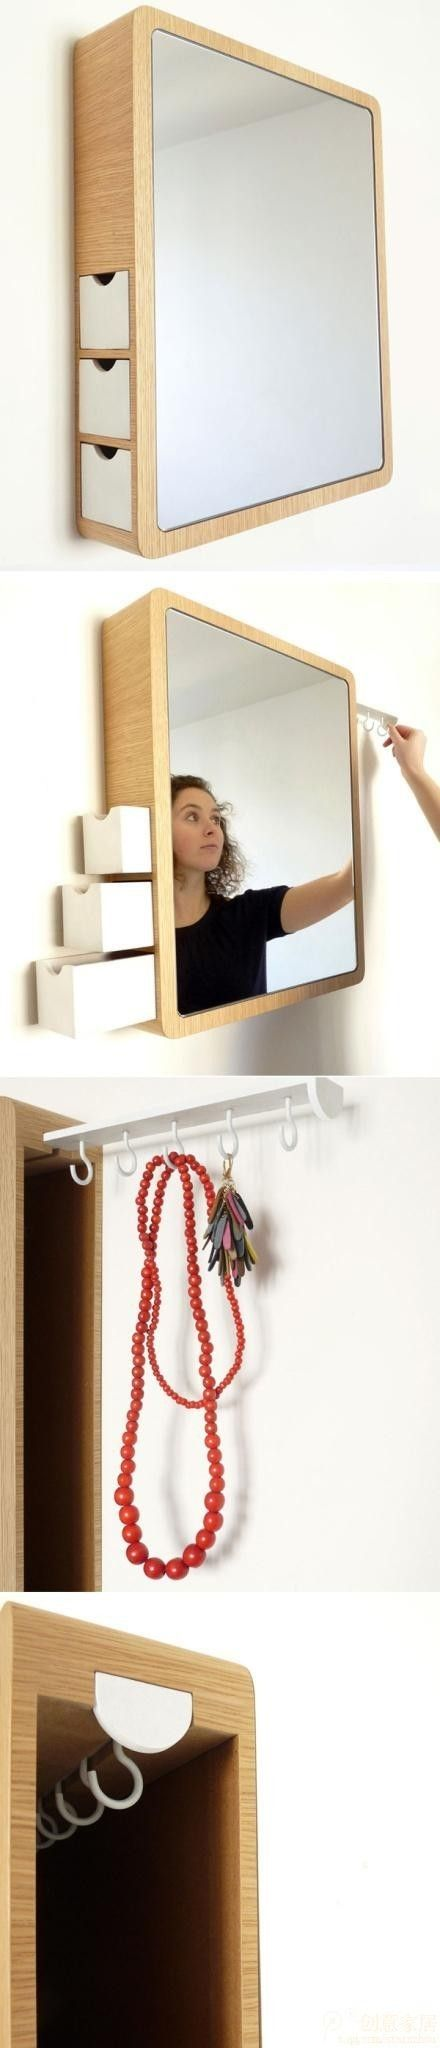 Design by les m studio this clever makeup mirror comes - Bathroom mirror with hidden storage ...